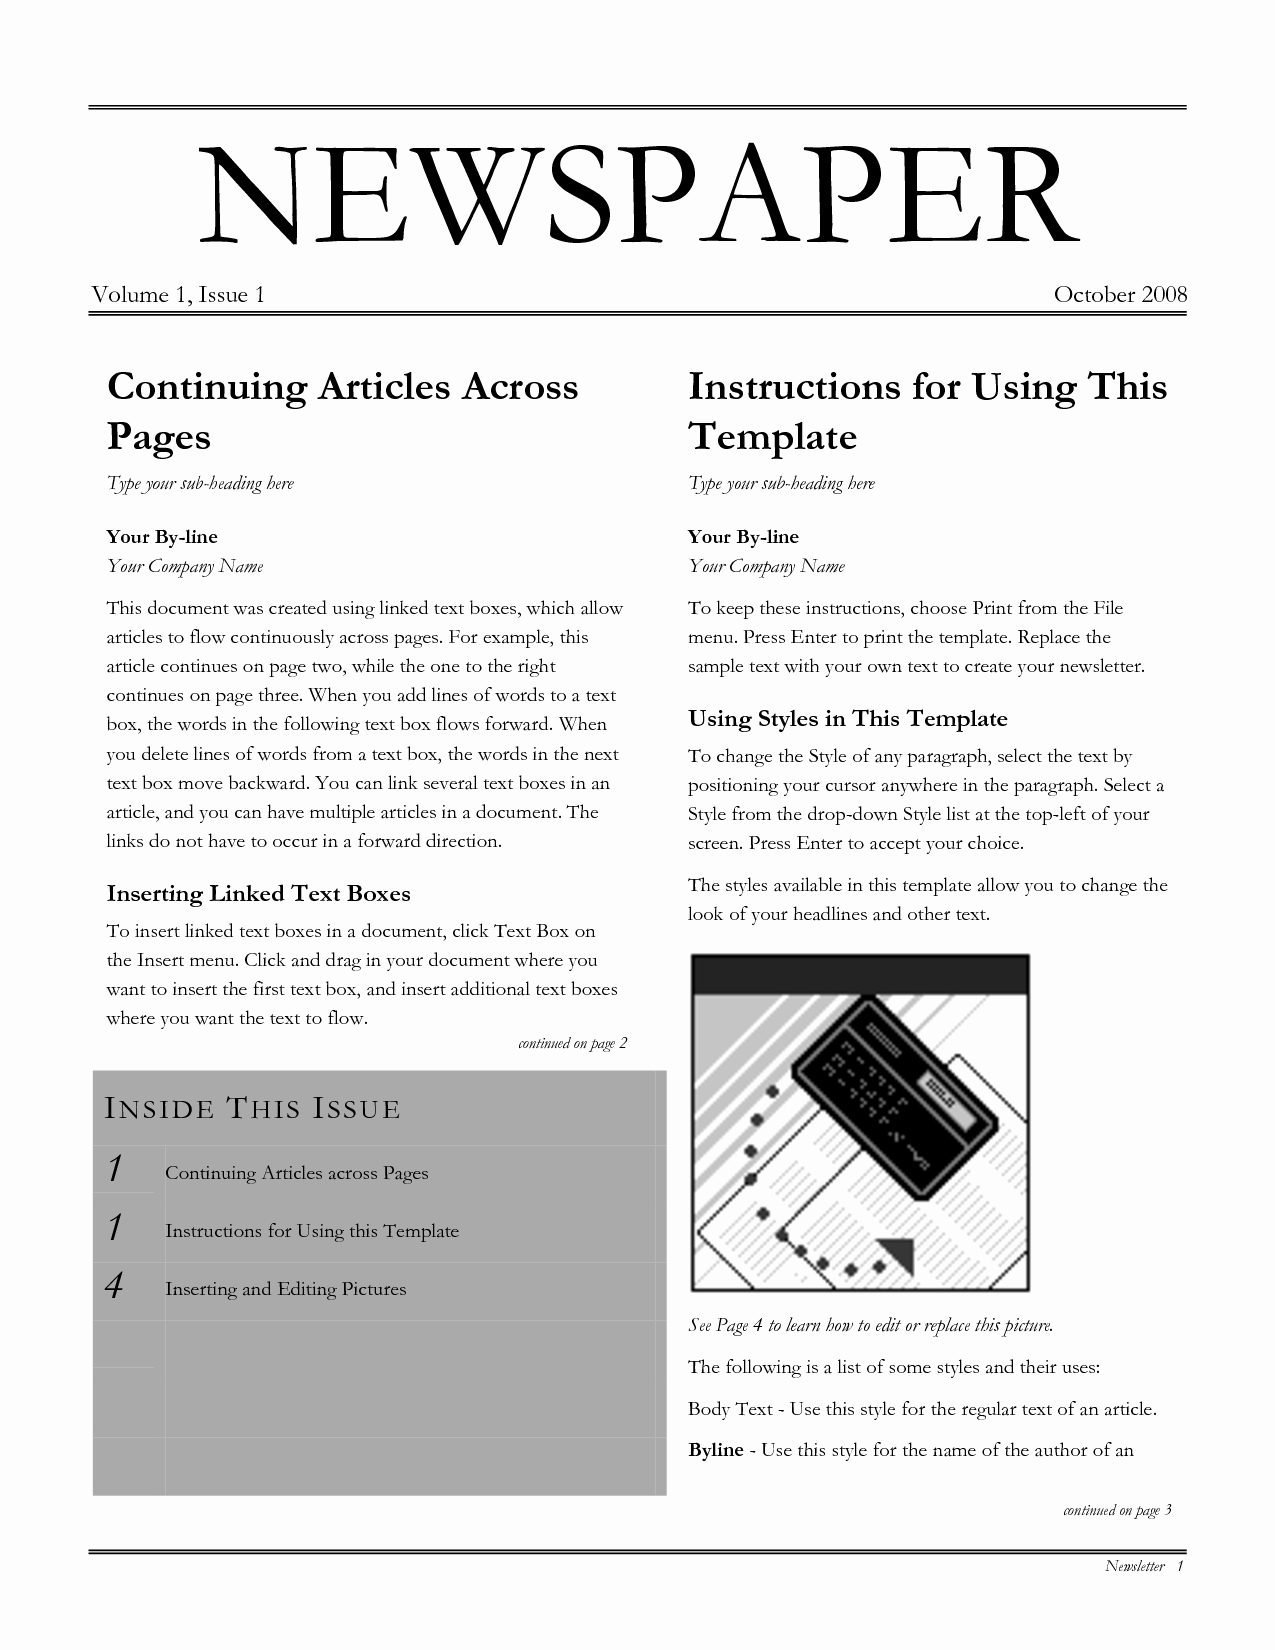 Newspaper Template for Word 2013 Elegant Best S Of Newspaper Layout Template for Word